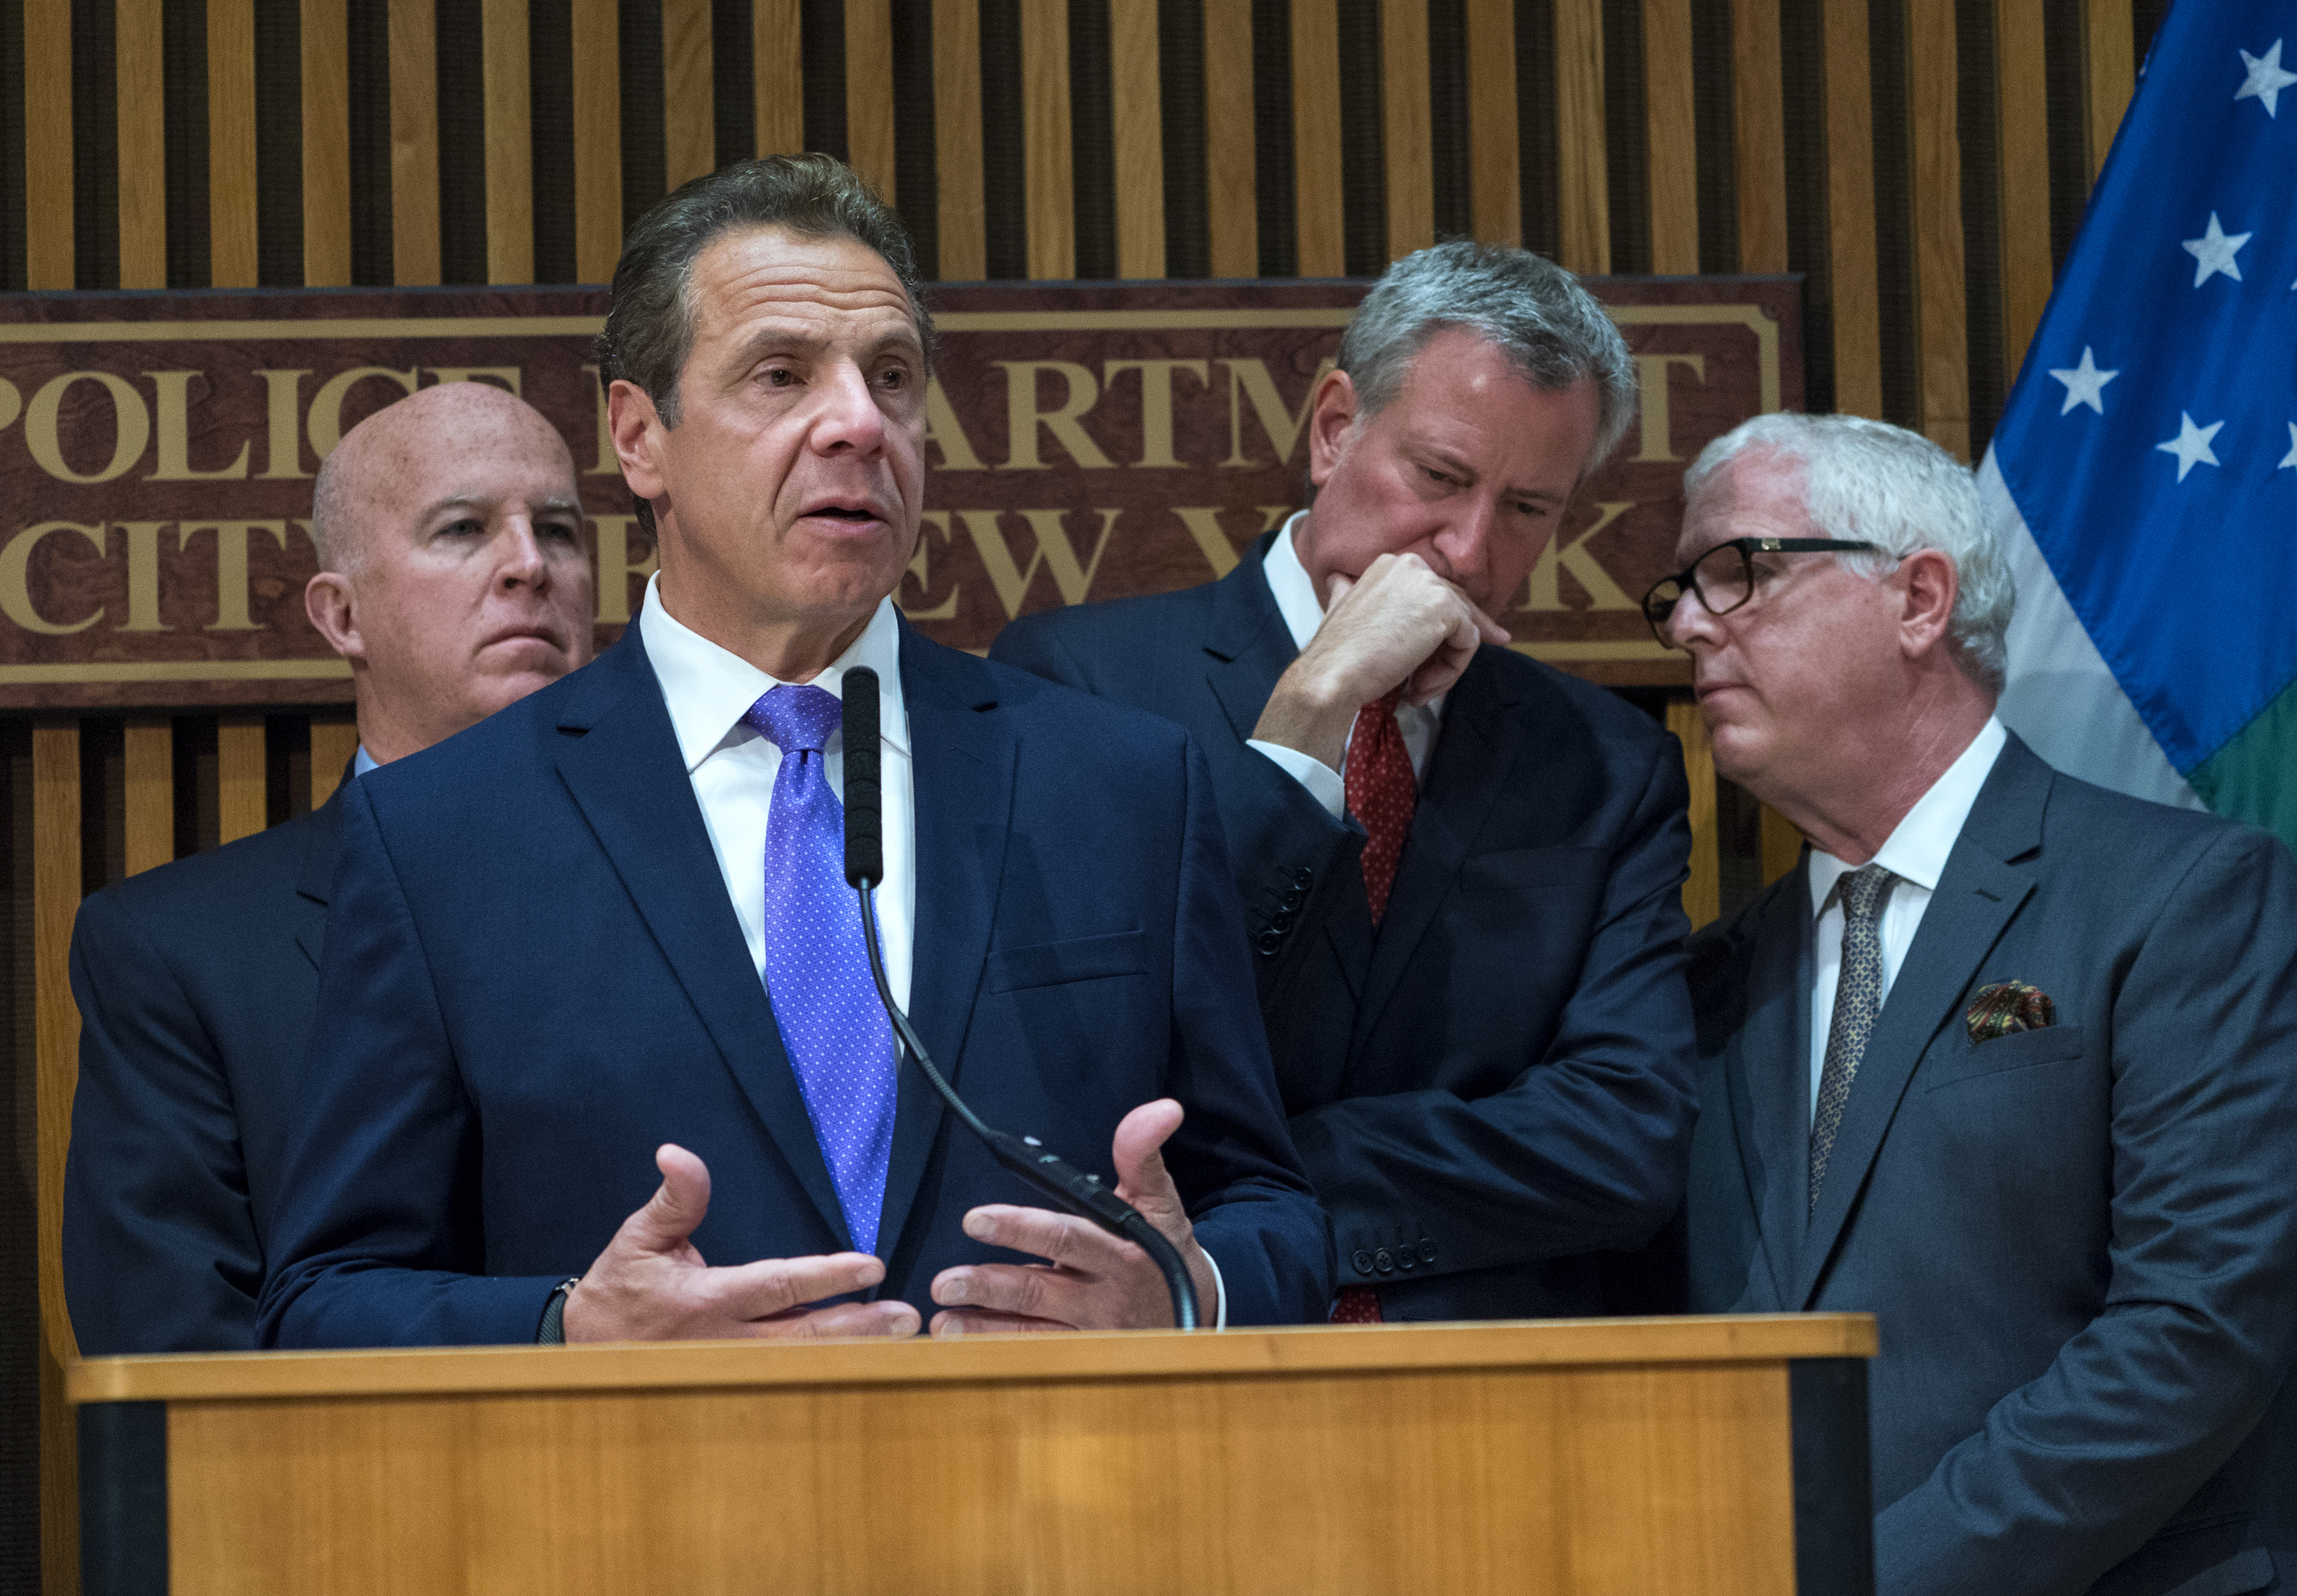 New York Gov. Andrew Cuomo speaks during a news conference, Nov. 1, 2017, in New York in the wake of a fatal truck attack. From left are Police Commissioner James P. O'Neill, Cuomo, Mayor Bill de Blasio, and Deputy Commissioner of Intelligence & Coun...